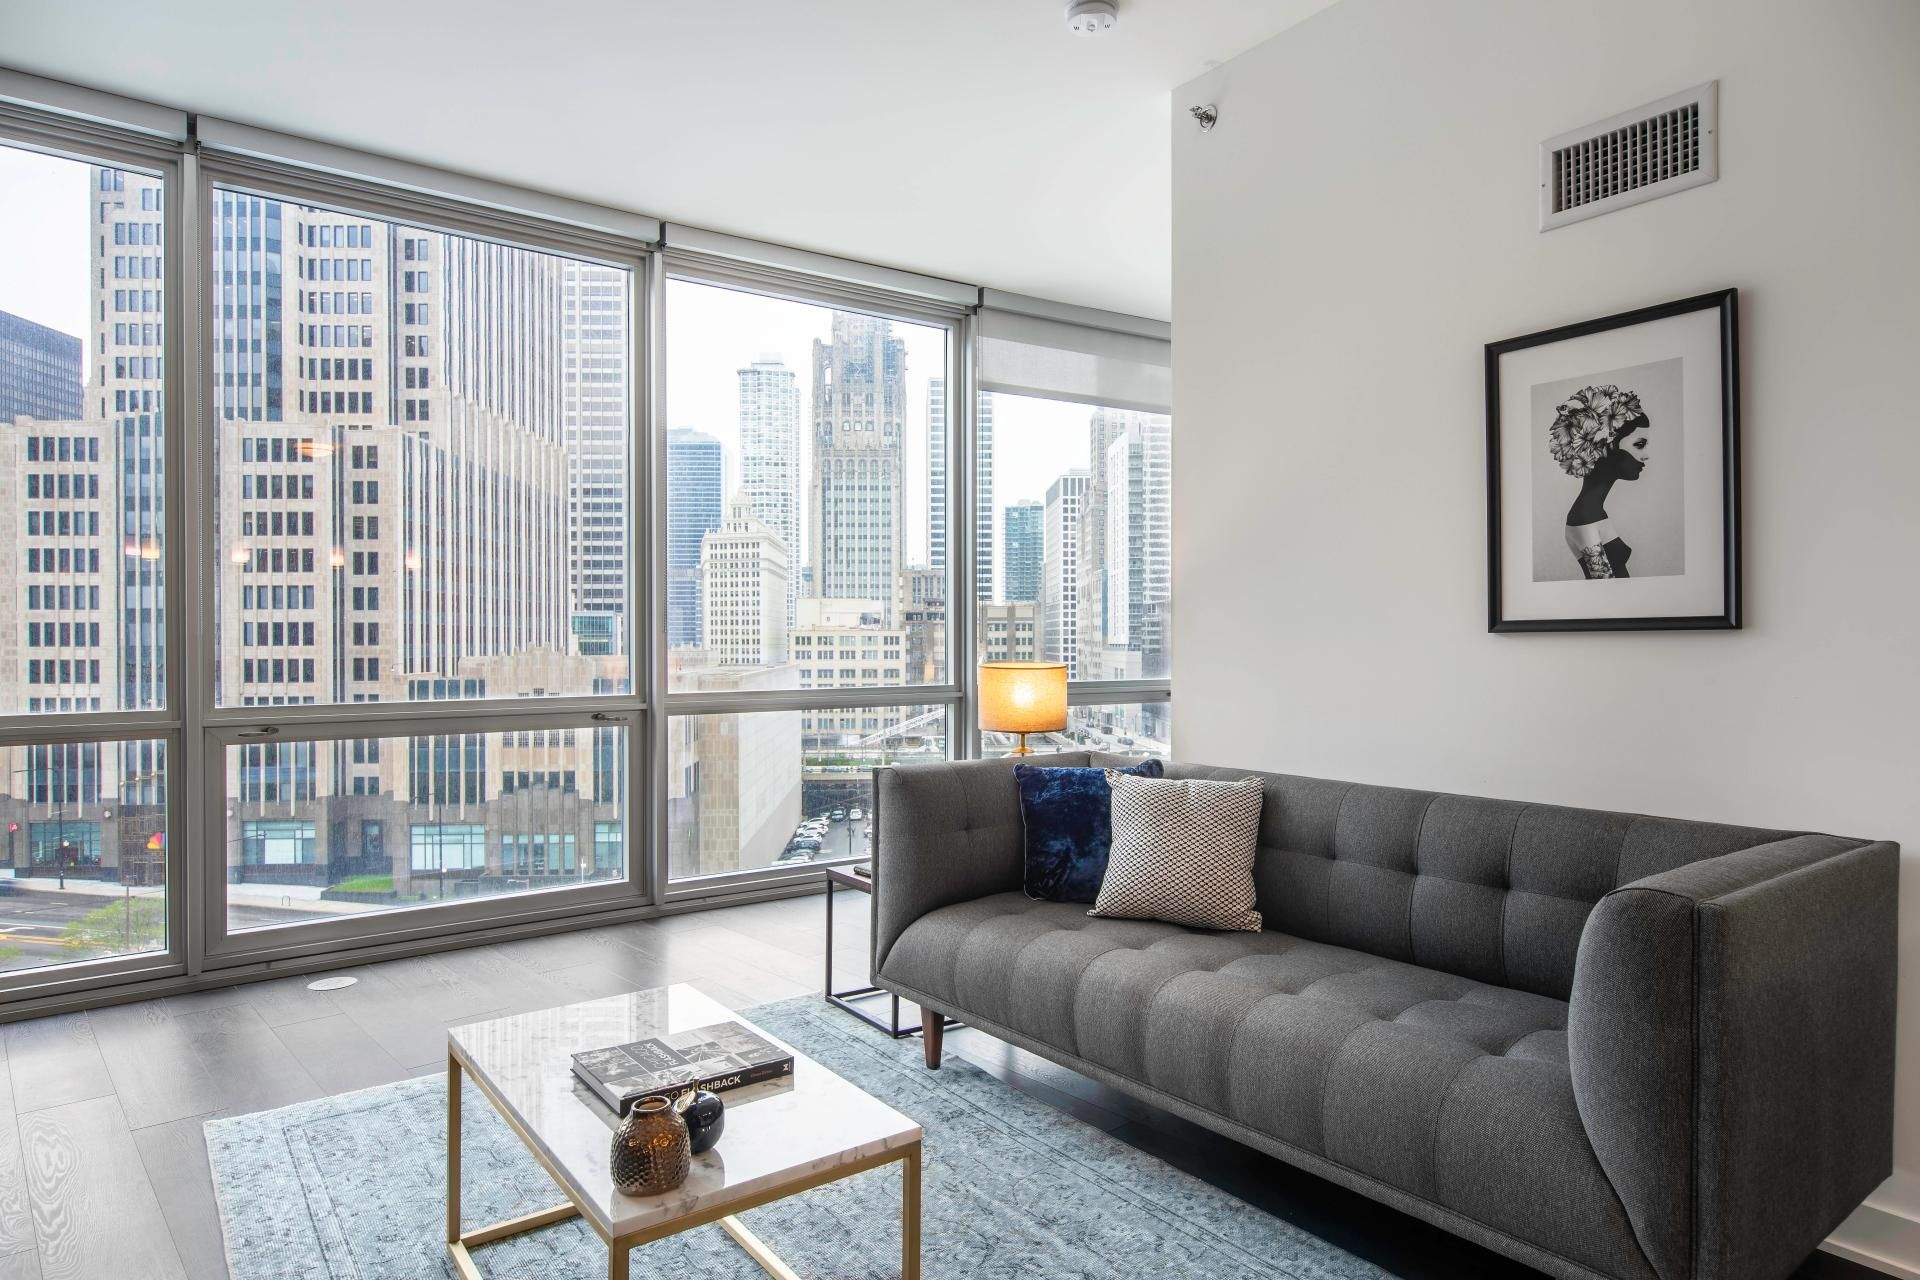 Relaxing On Our Big Beautiful Couch In Chicago Fully Furnished 1bedroom Apartment In Street Chic Apartment Decor Elegant Apartment Decor Dyi Apartment Decor